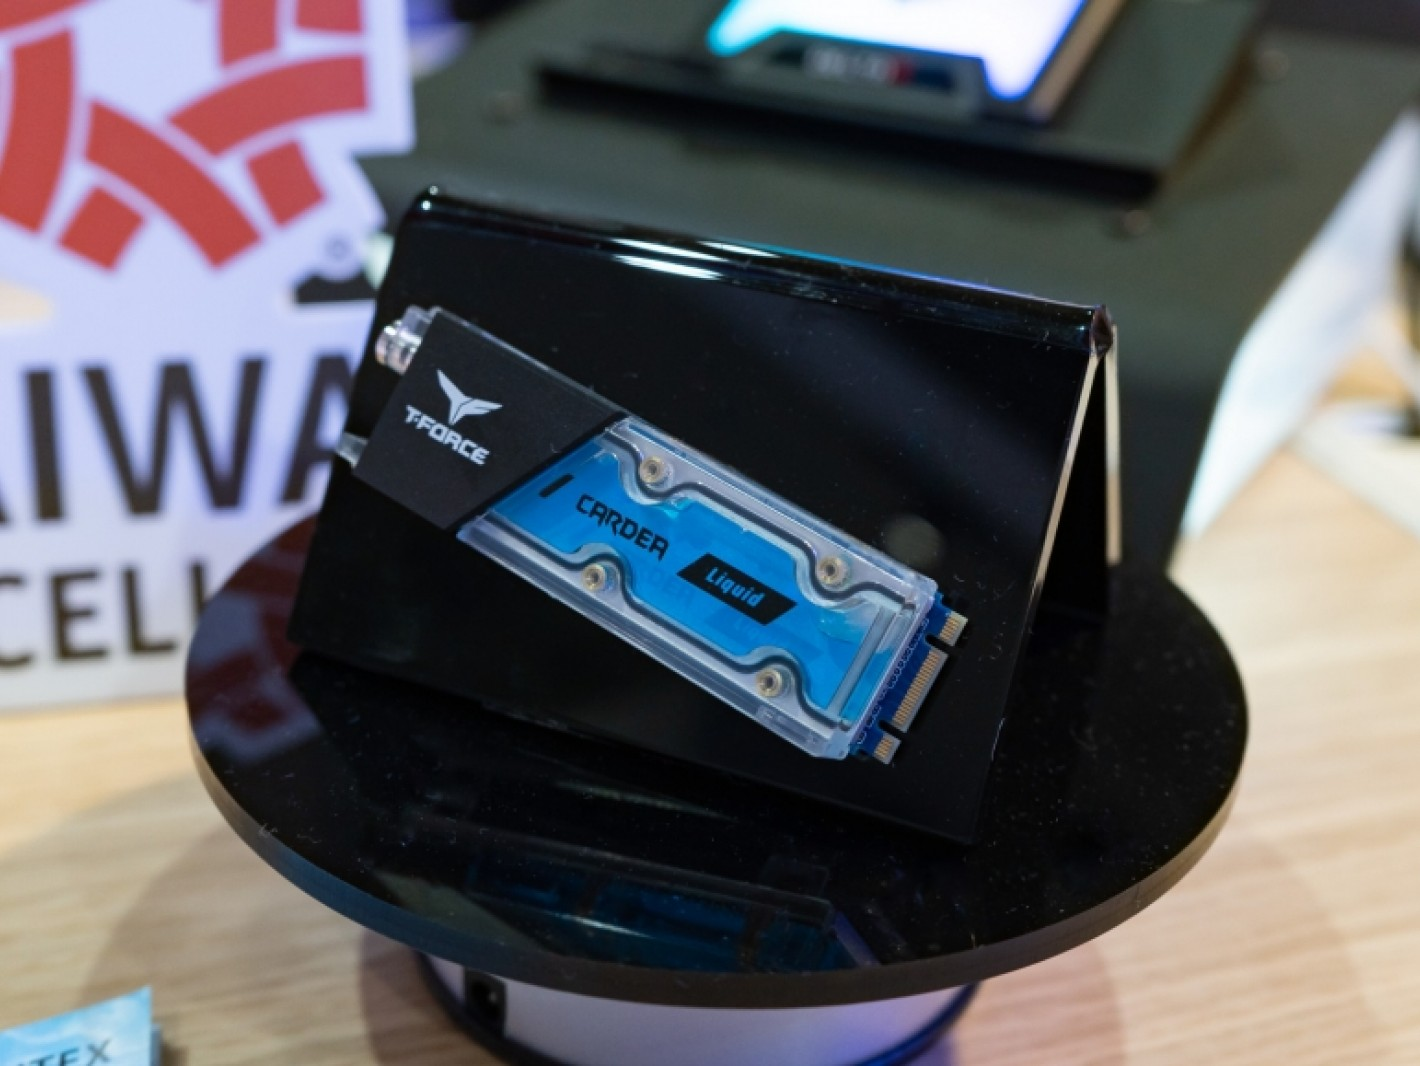 Teamgroup T-Force Delta RGB SSD und CARDEA Liquid M.2 PCIe SSD